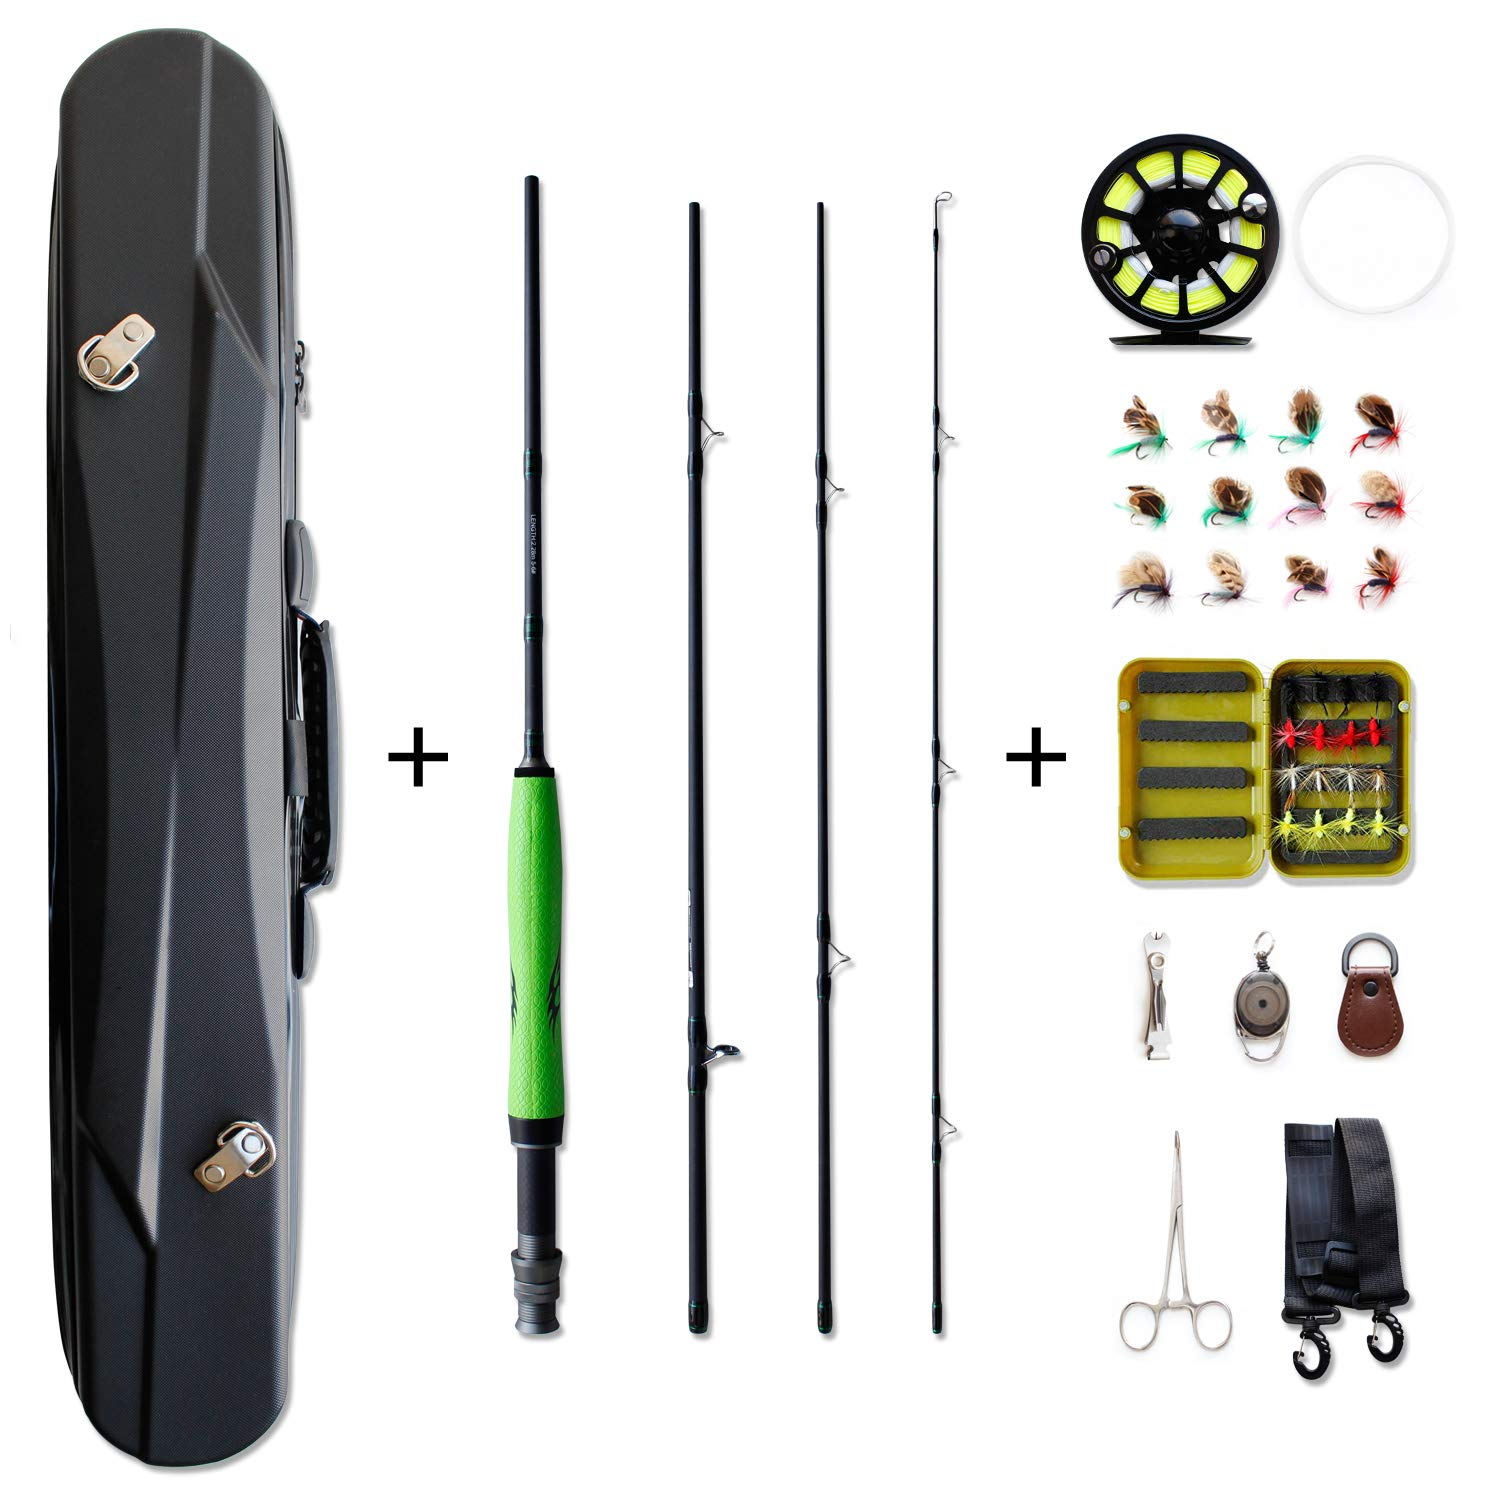 NetAngler Fly Fishing Rod and Reel Combo, 4-Piece Rod 5 6 CNC Machined Aluminum Alloy Reel Fly Fishing Complete Starter Package with Carry Bag